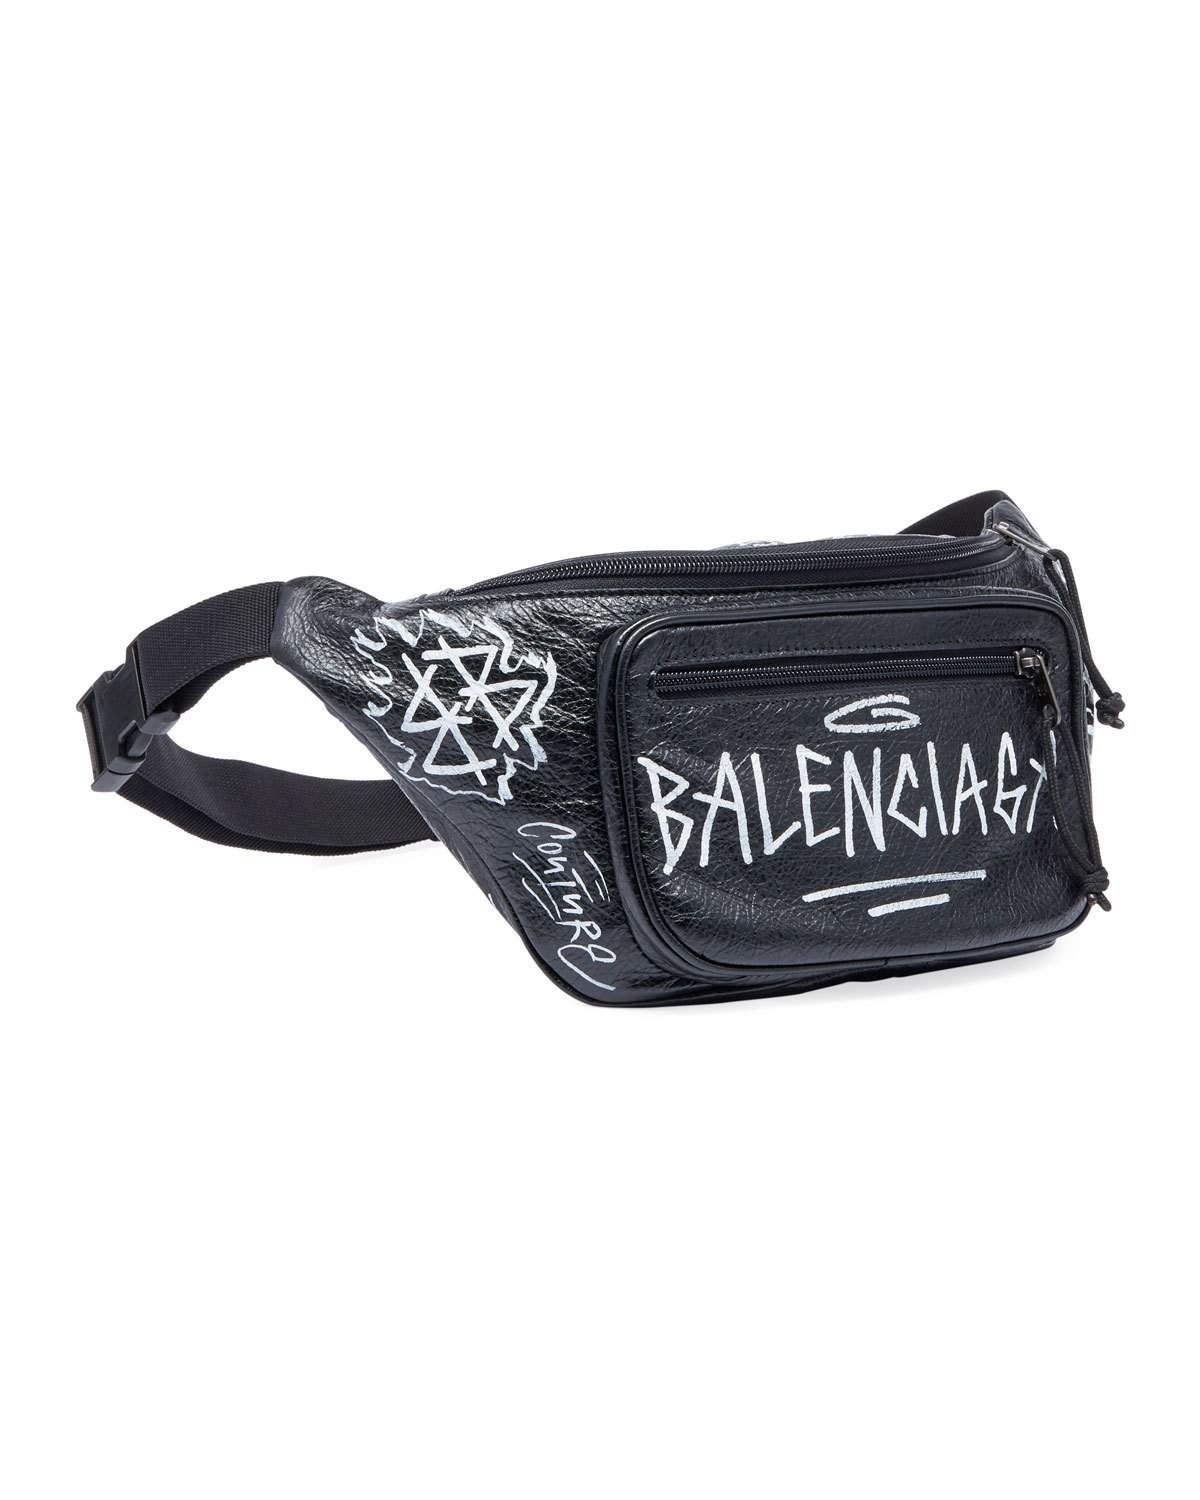 8f15721ad812 Balenciaga Graffiti-Print Leather Belt Bag in 2019 | Products ...